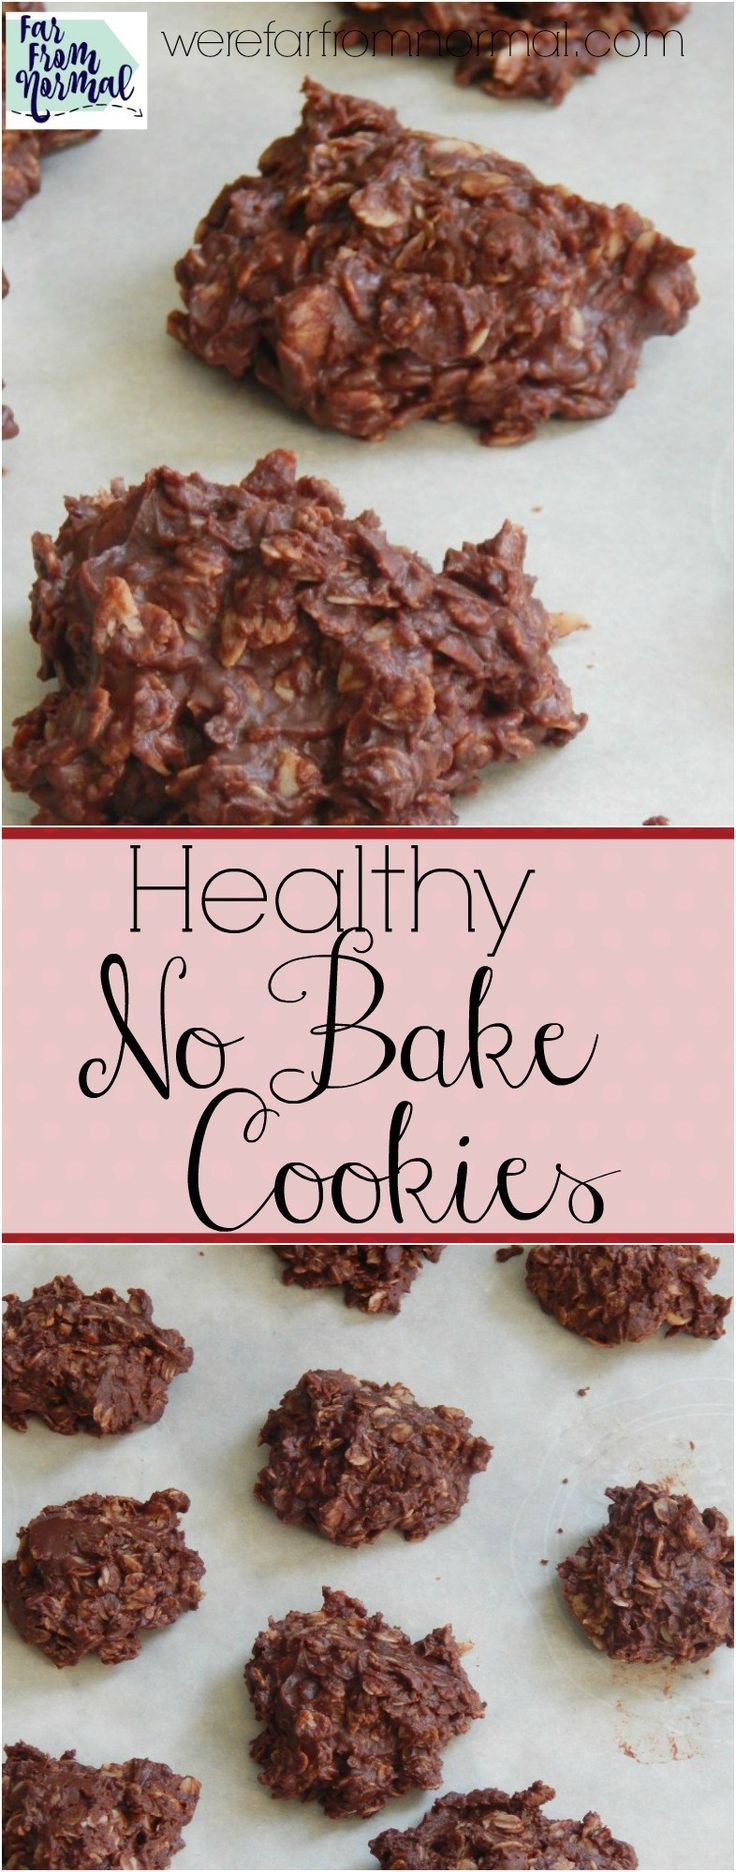 These cafeteria favorites are delicious and free of refined sugar! A healthy version that tastes just as awesome as the original!